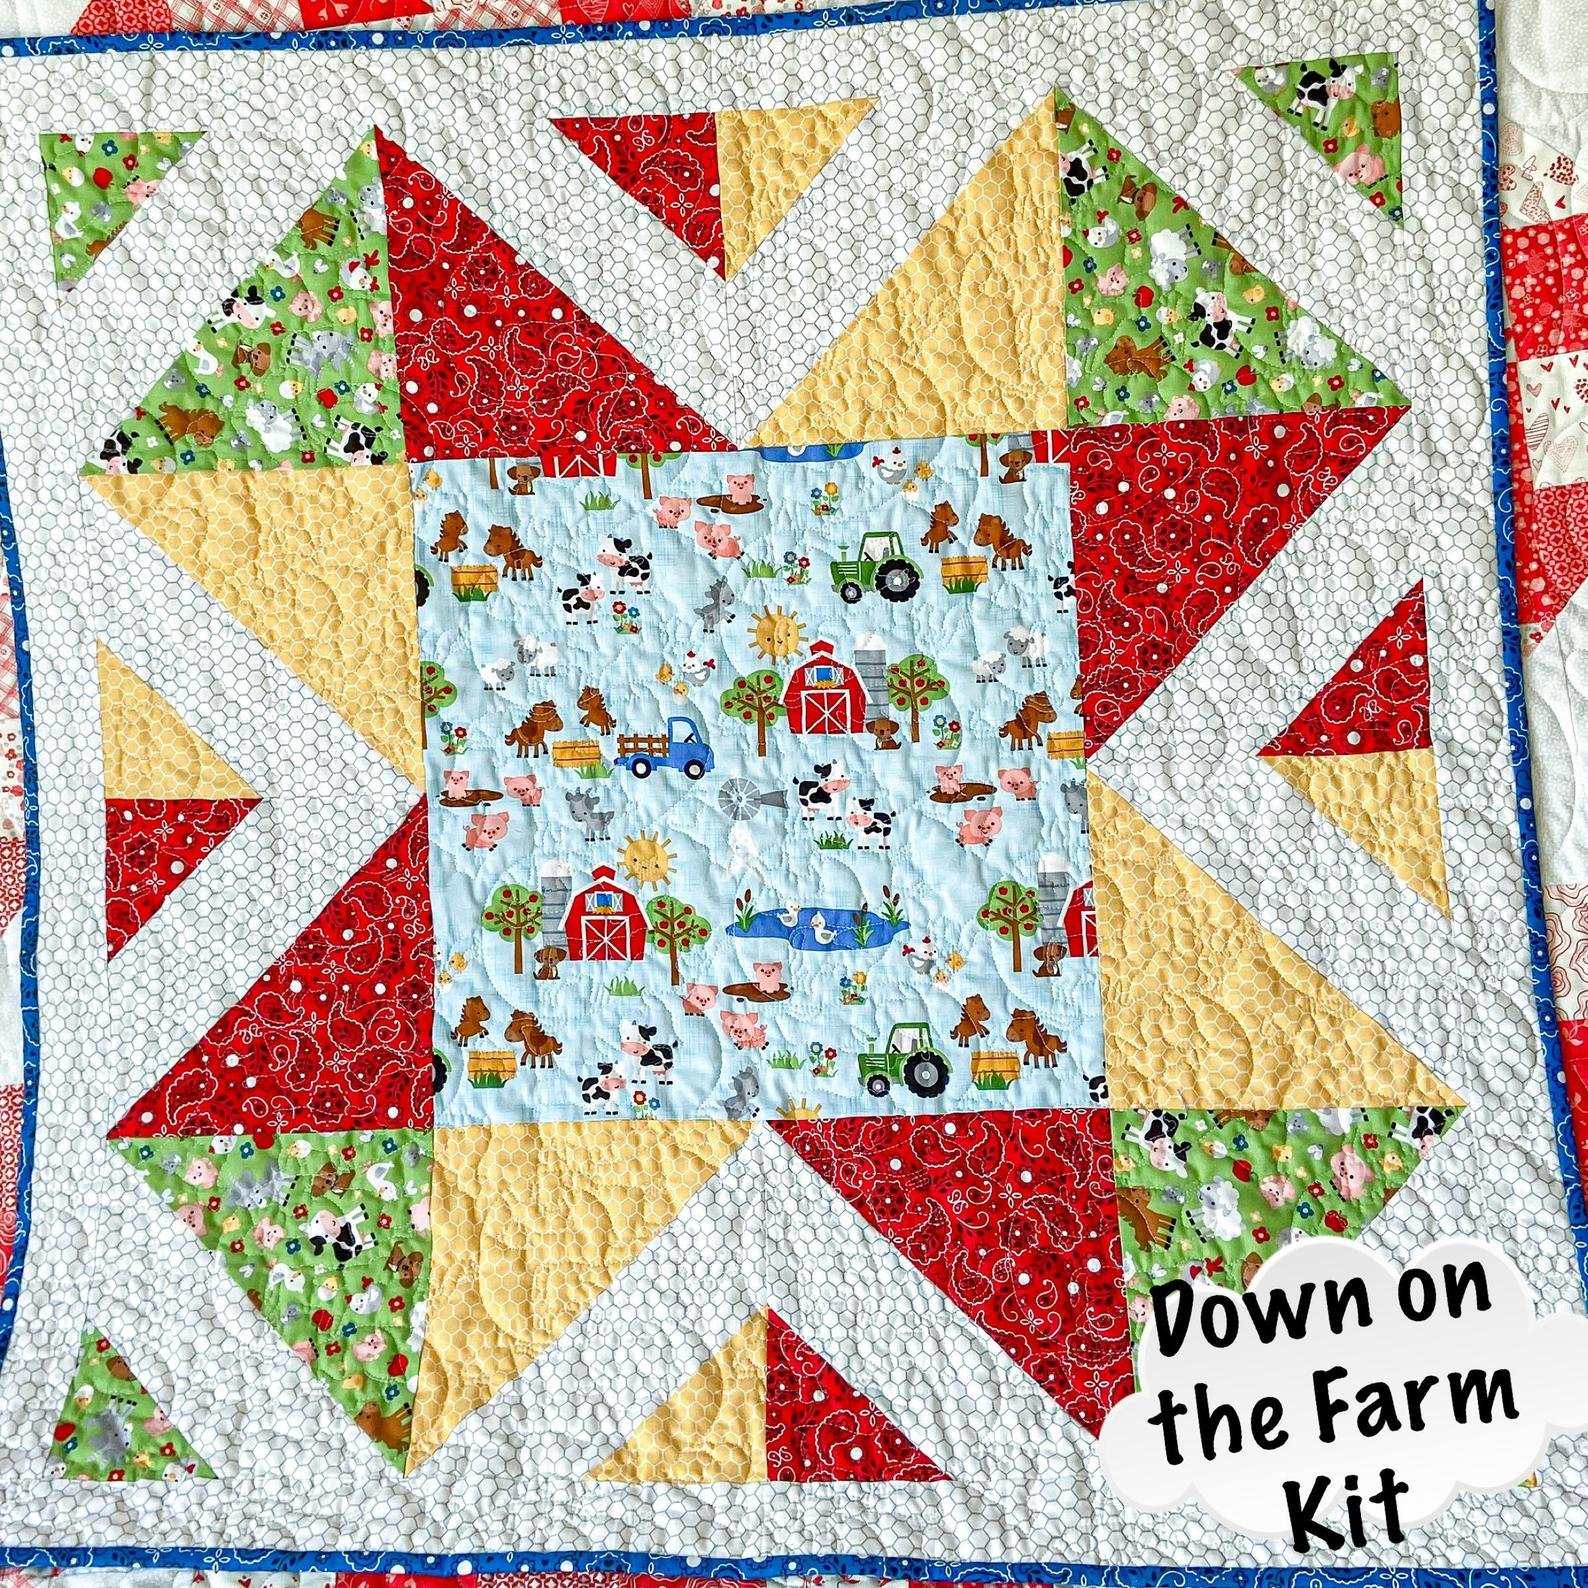 Down on the Farm Quilt Kit